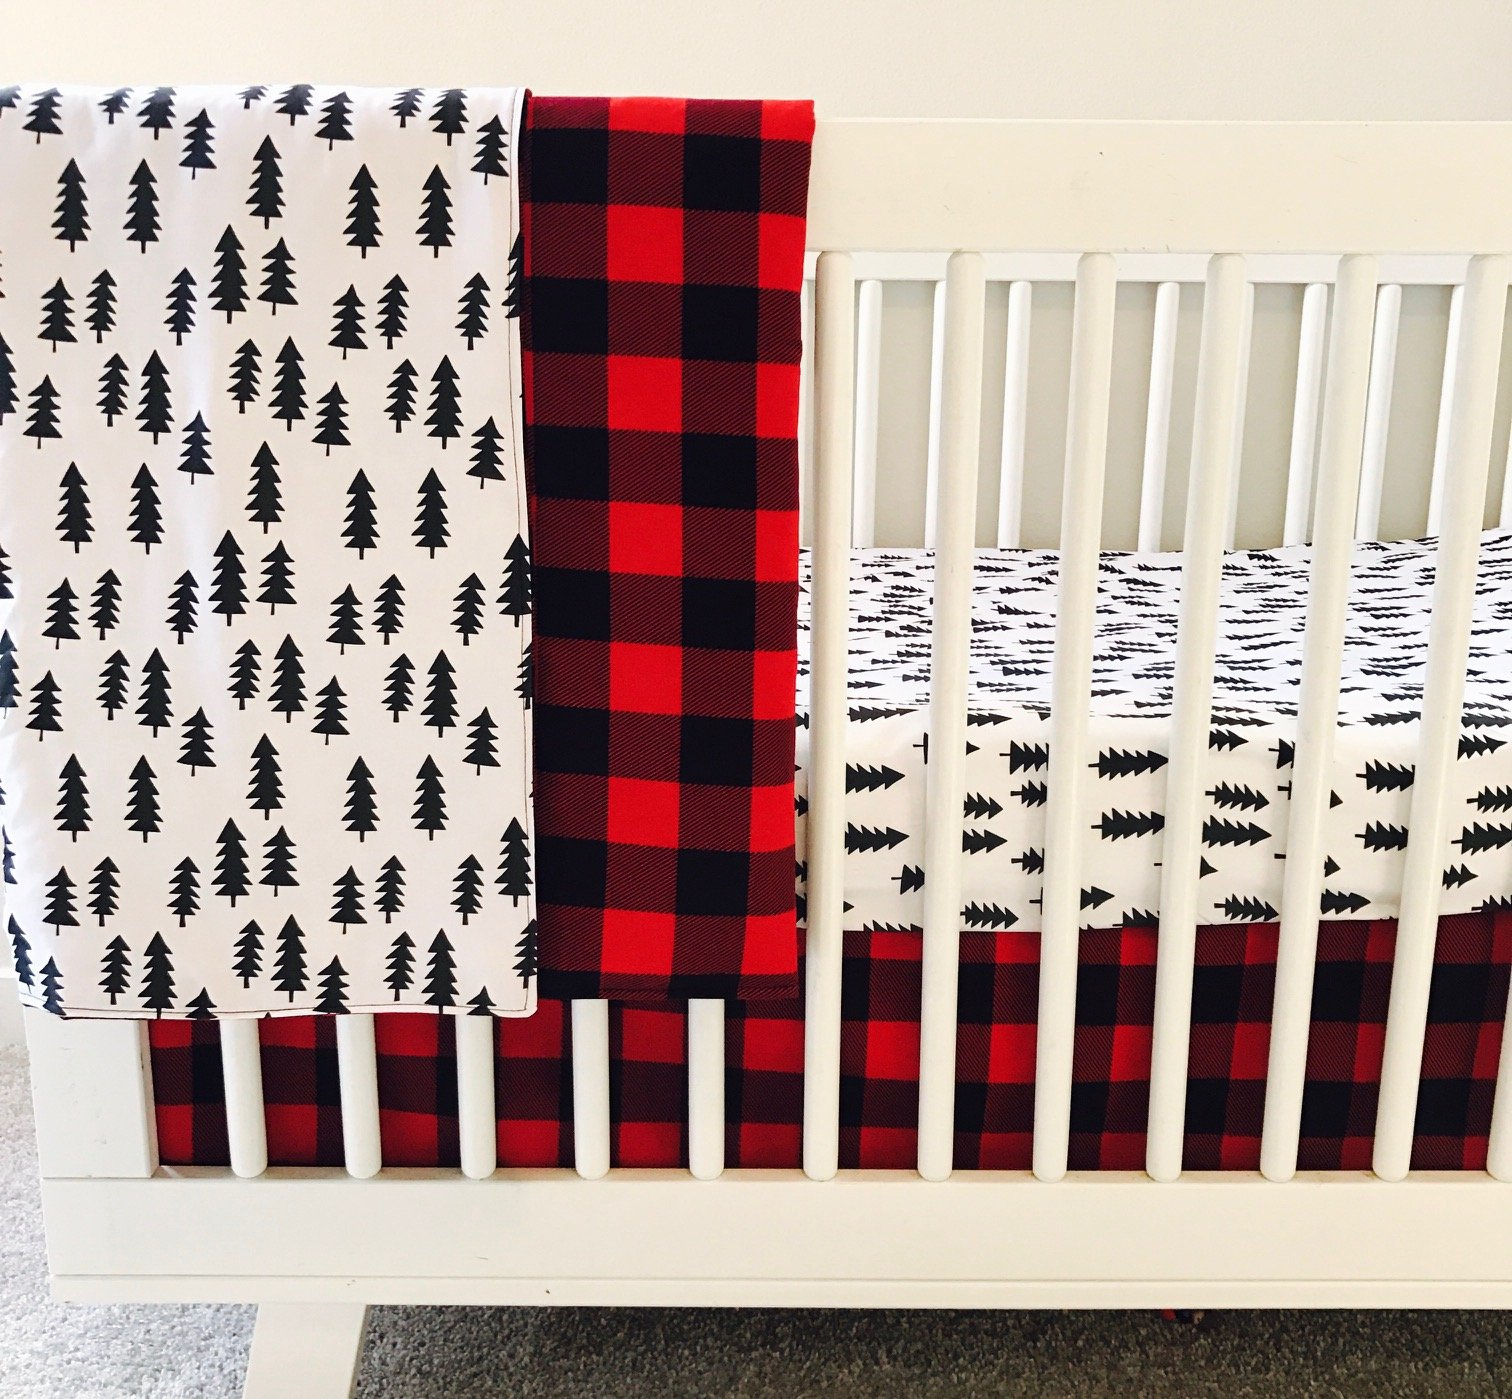 Crib Skirt in Red and Black Buffalo Plaid by AllTot - Woodland Crib Bedding- Crib skirt - Handmade in The USA